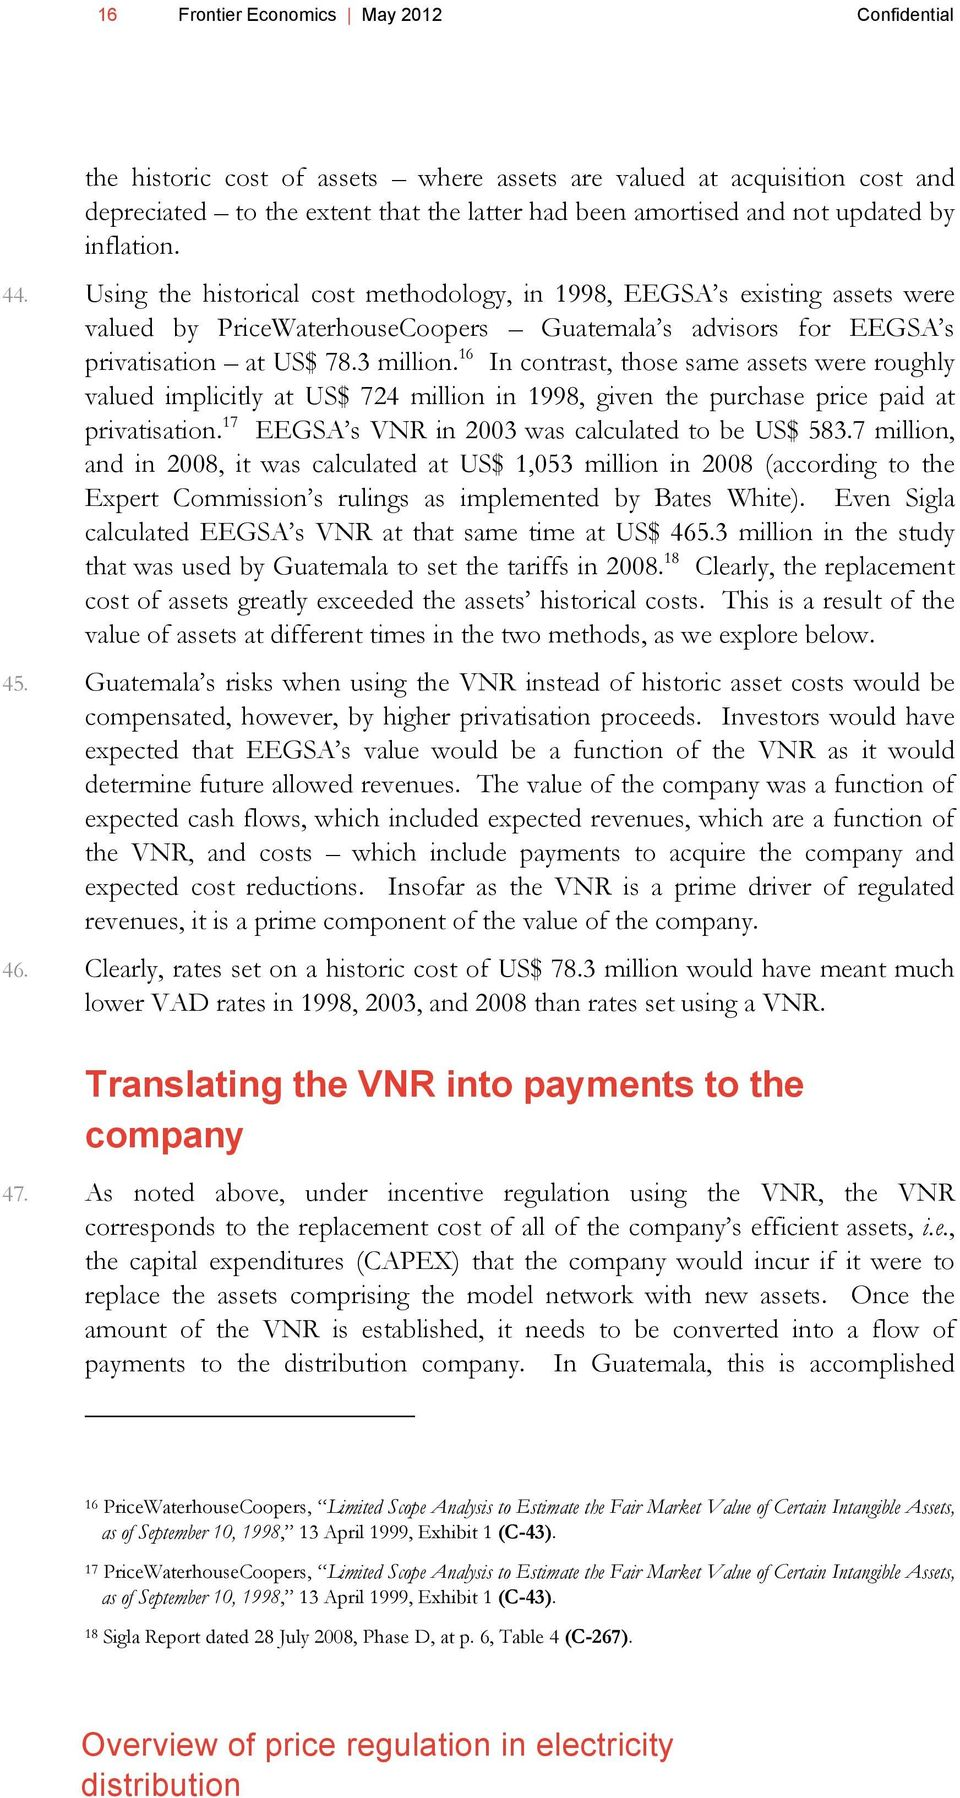 16 In contrast, those same assets were roughly valued implicitly at US$ 724 million in 1998, given the purchase price paid at privatisation. 17 EEGSA s VNR in 2003 was calculated to be US$ 583.